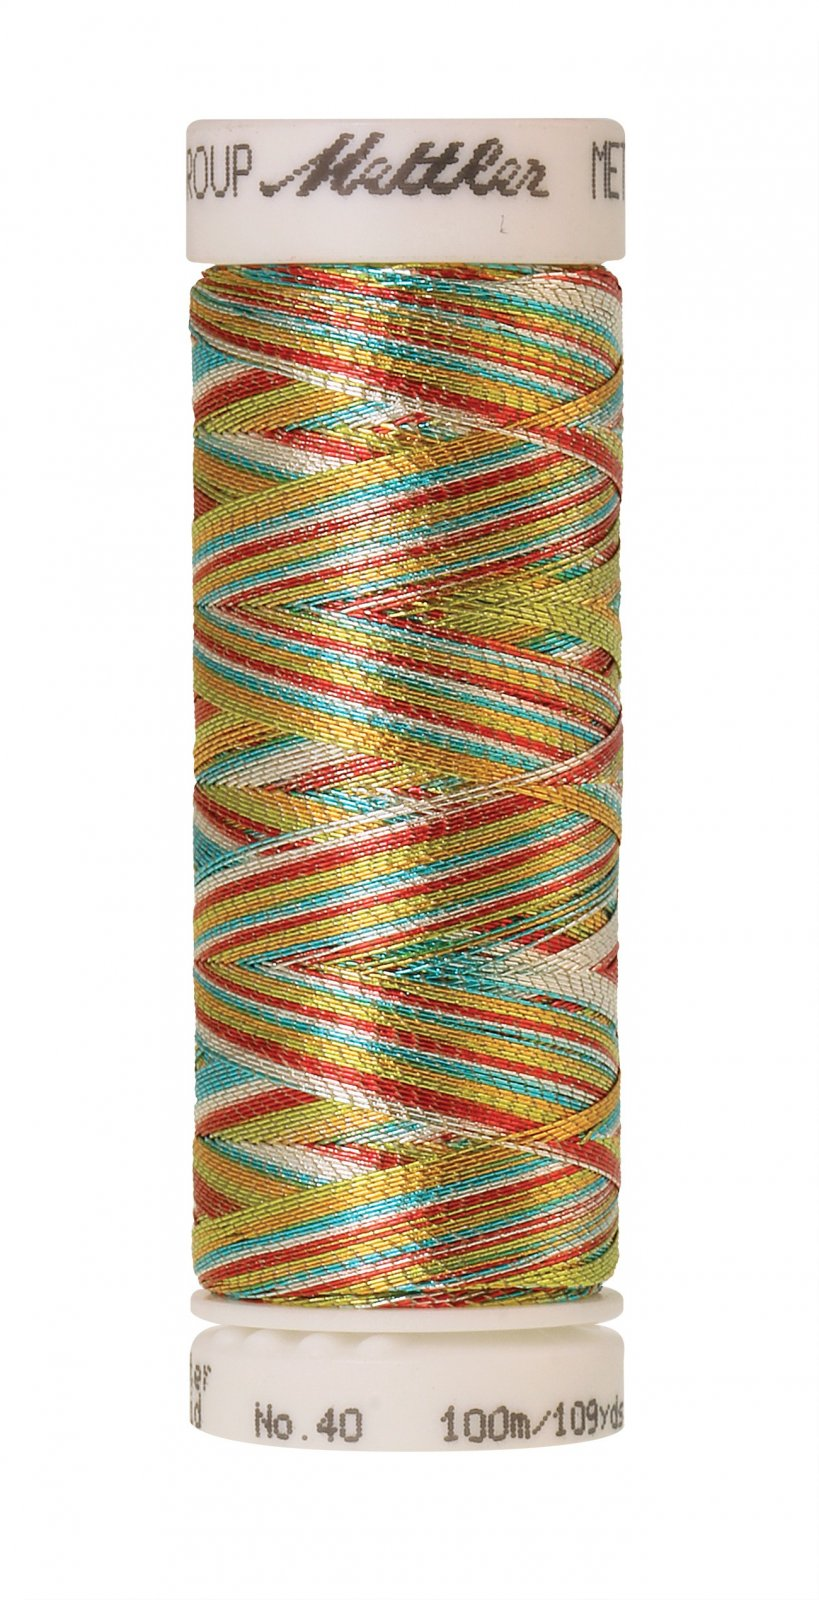 Polyester/Nylon Metallic Embroidery Thread 40wt 300d 100M/110yds Multicolor 2